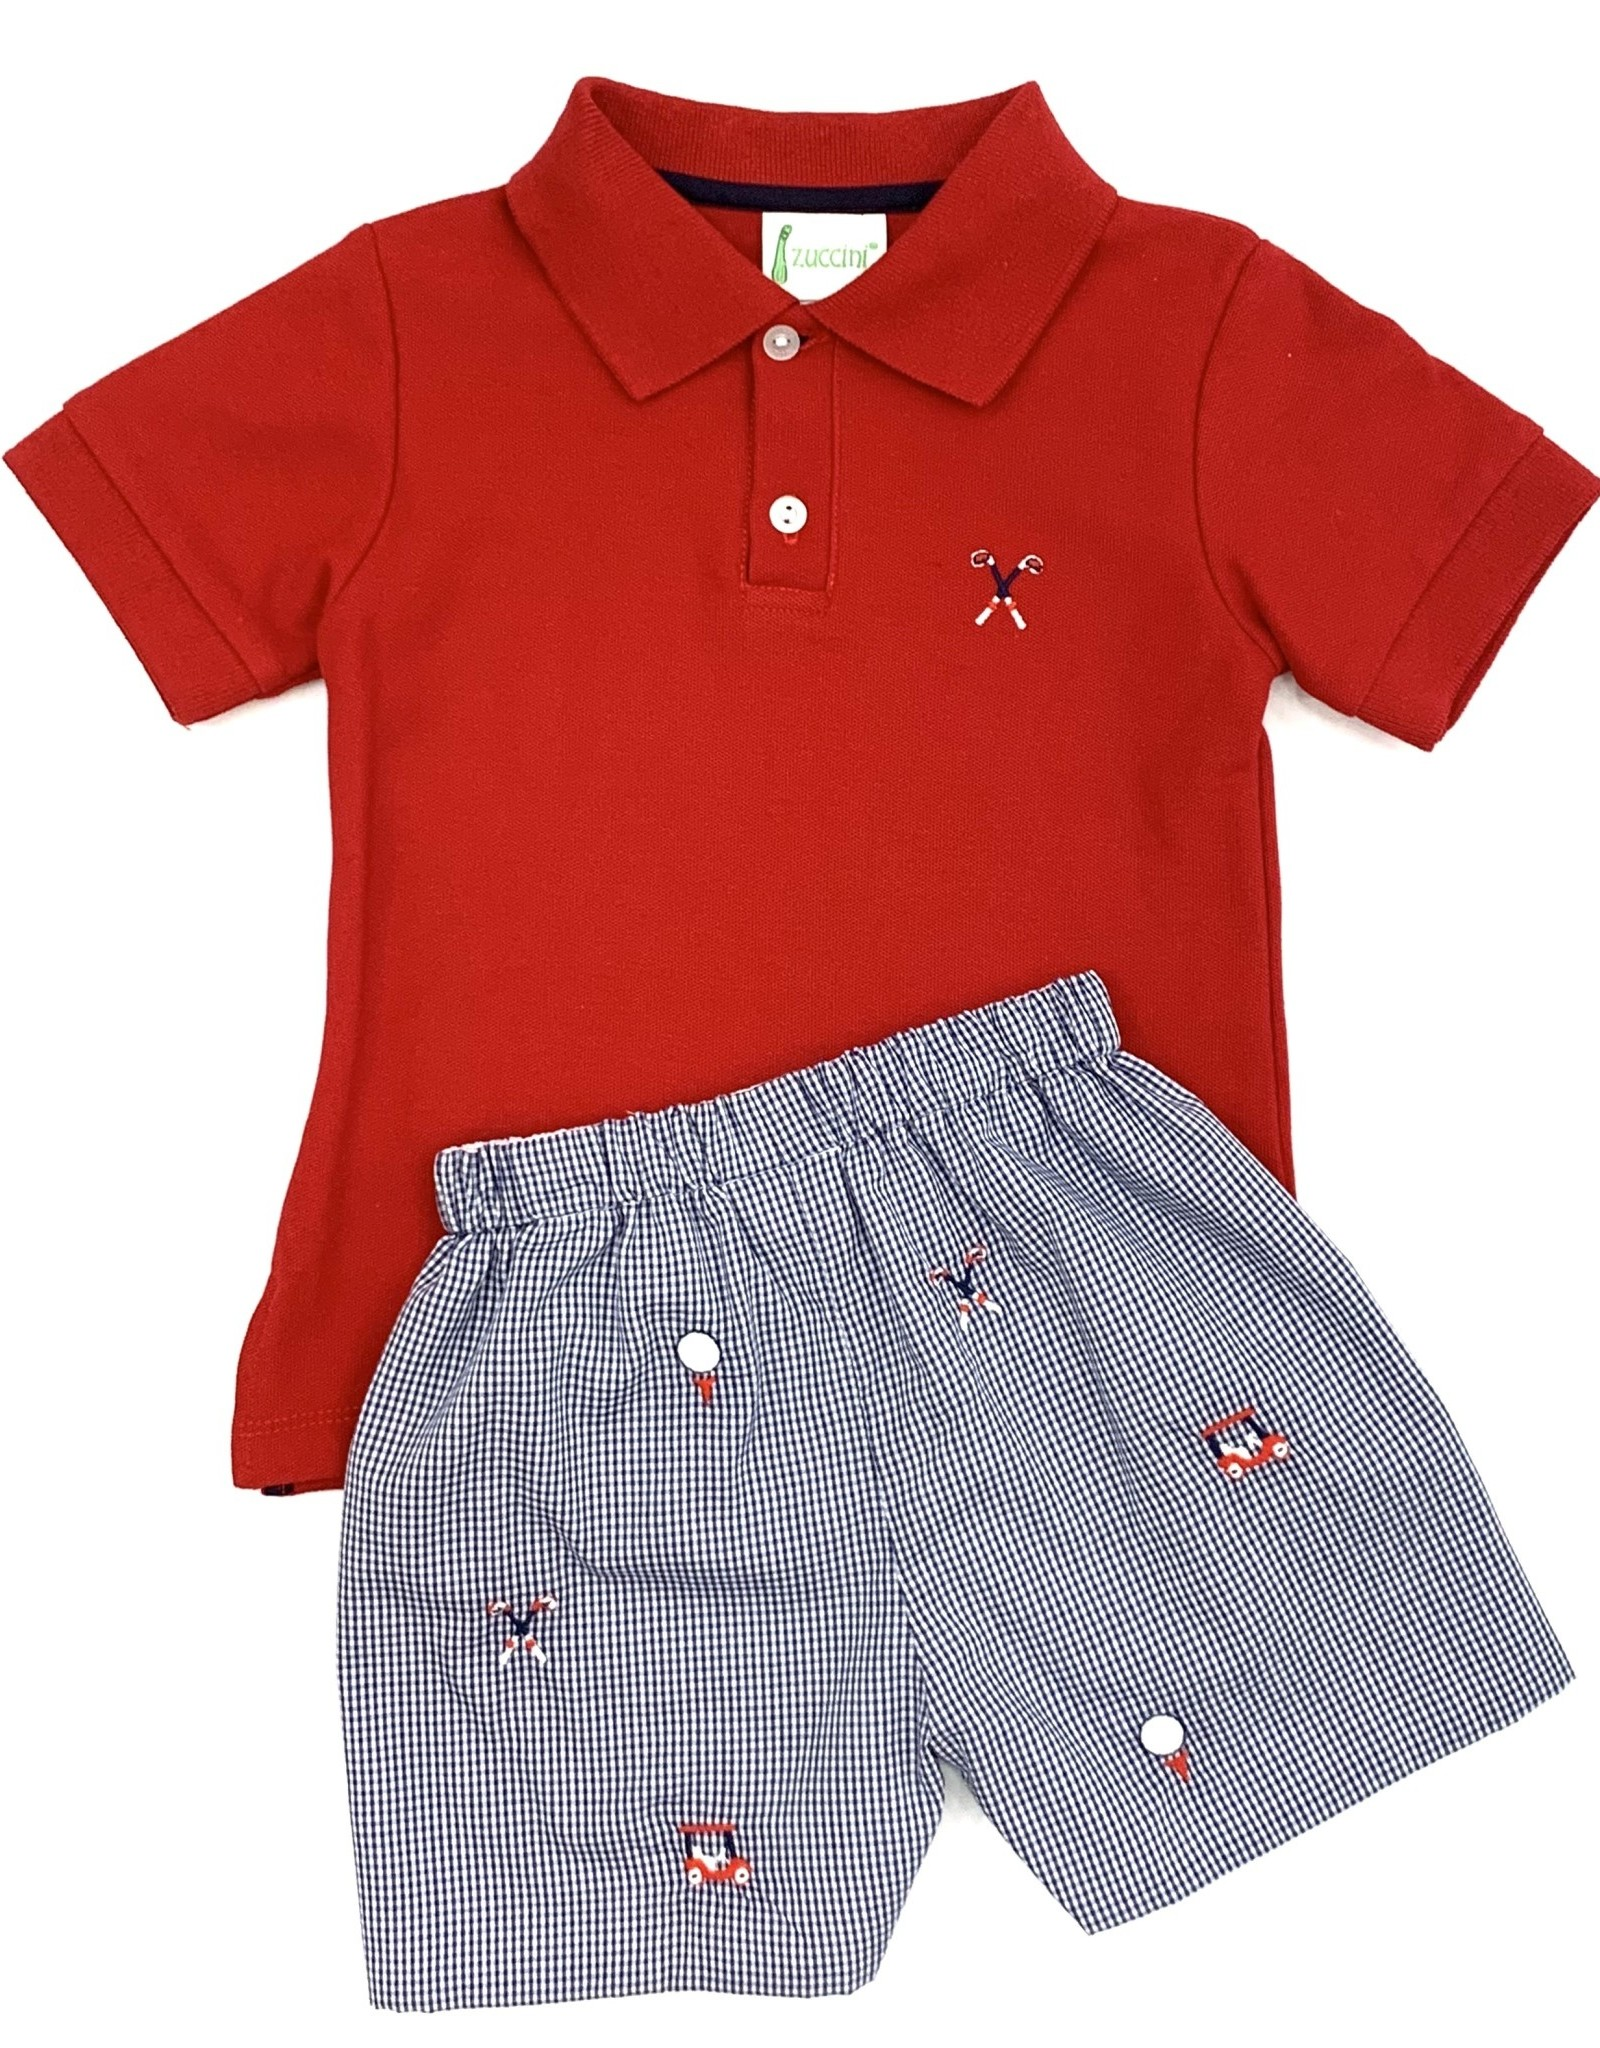 Zuccini Embroidery Golf Polo and Short Set